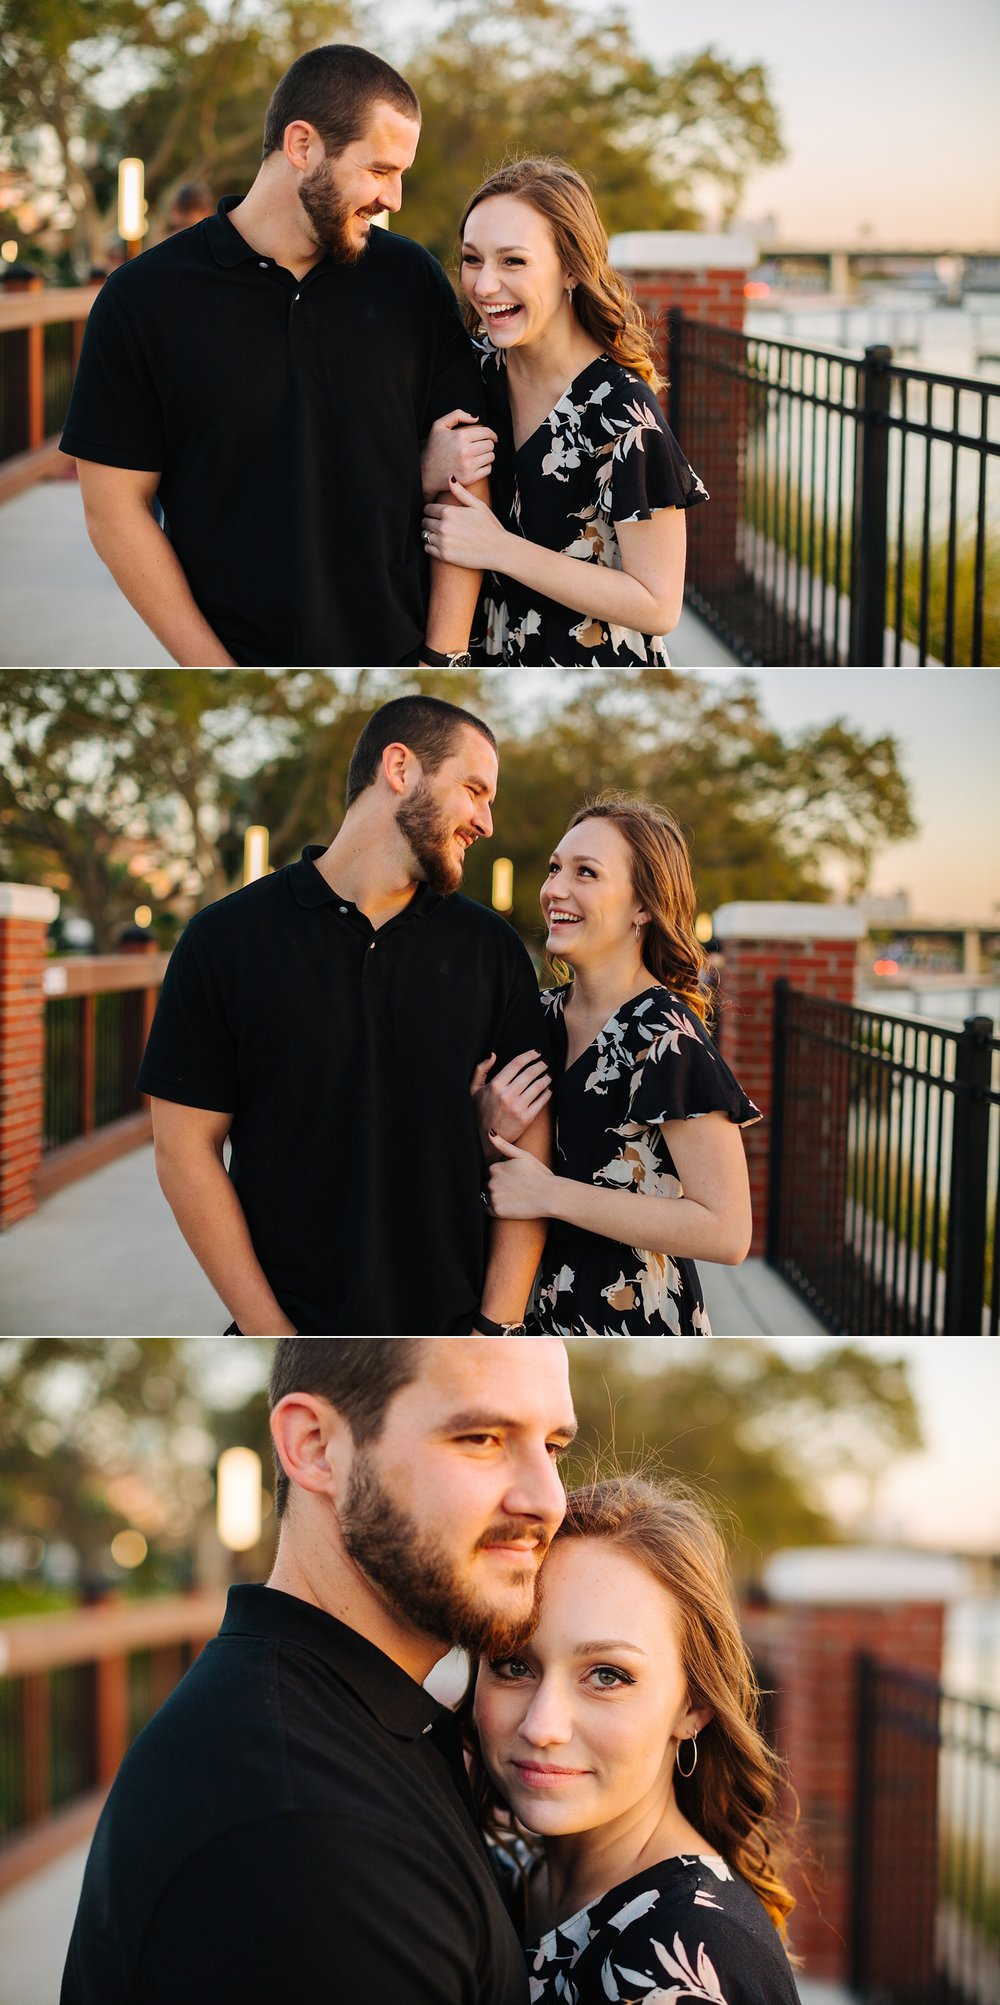 water works park tampa engagement photos